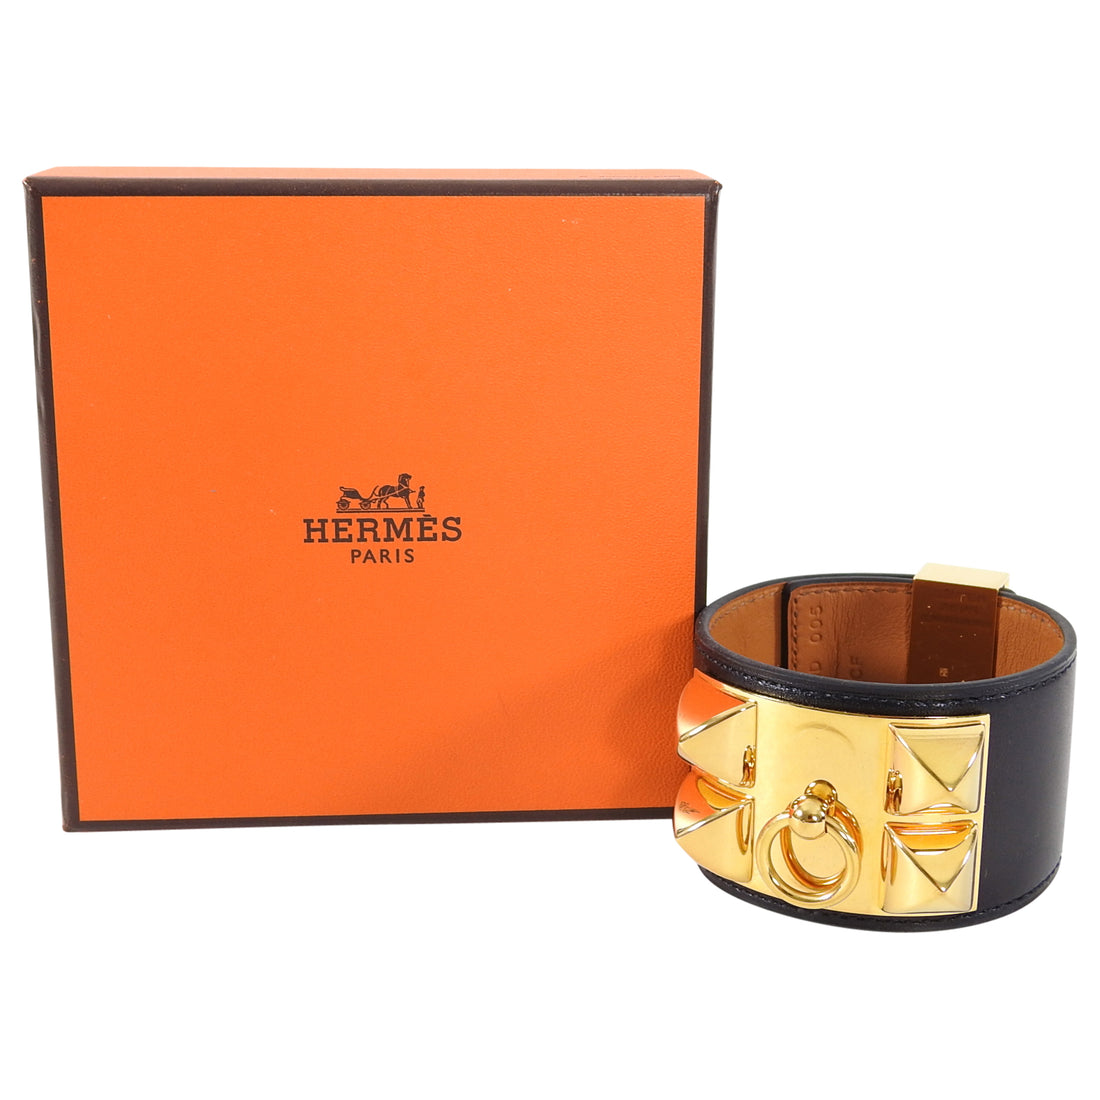 Hermes Collier De Chien Black and Gold Cuff Bracelet